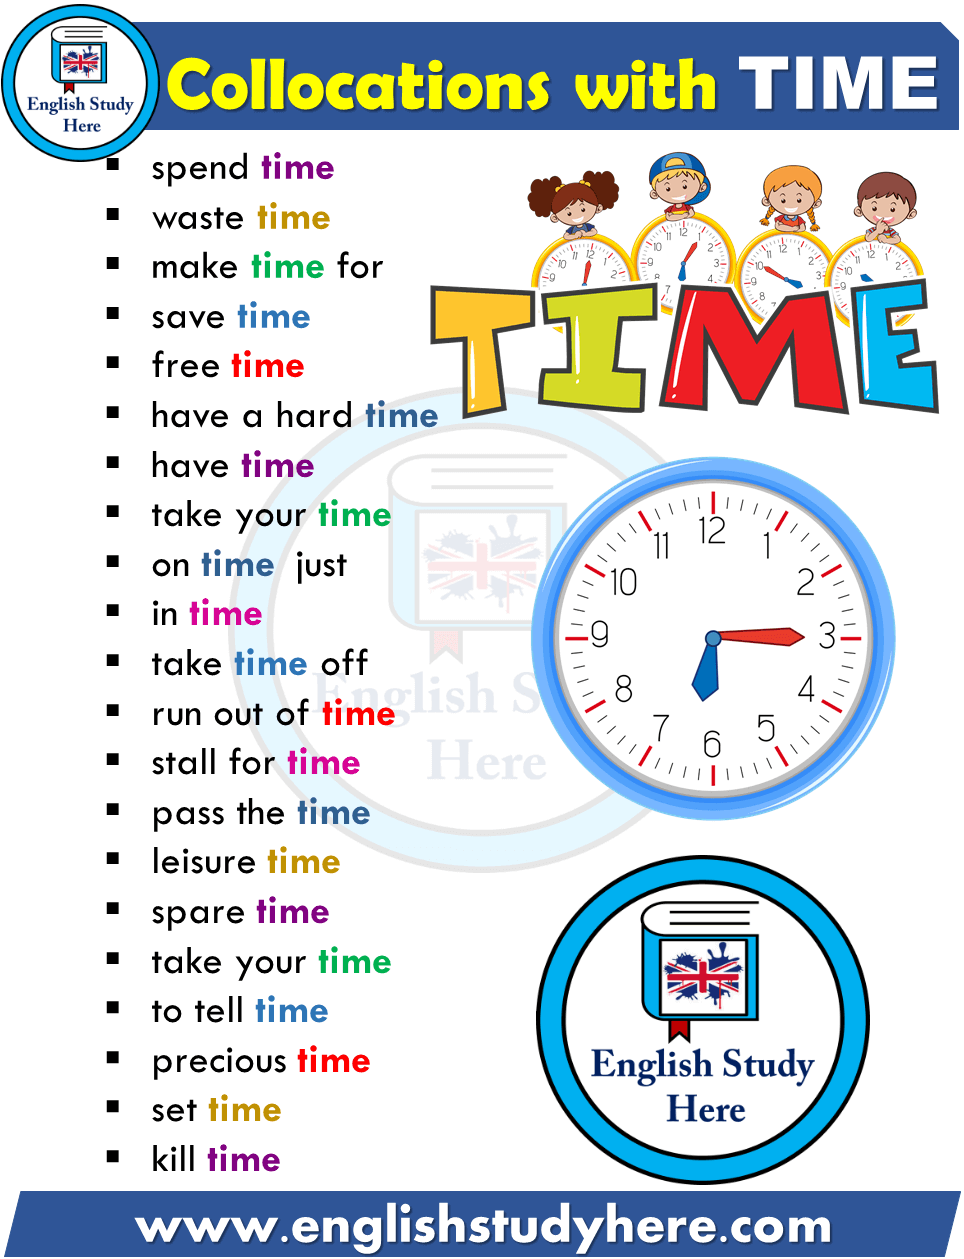 Collocations List with TIME in English